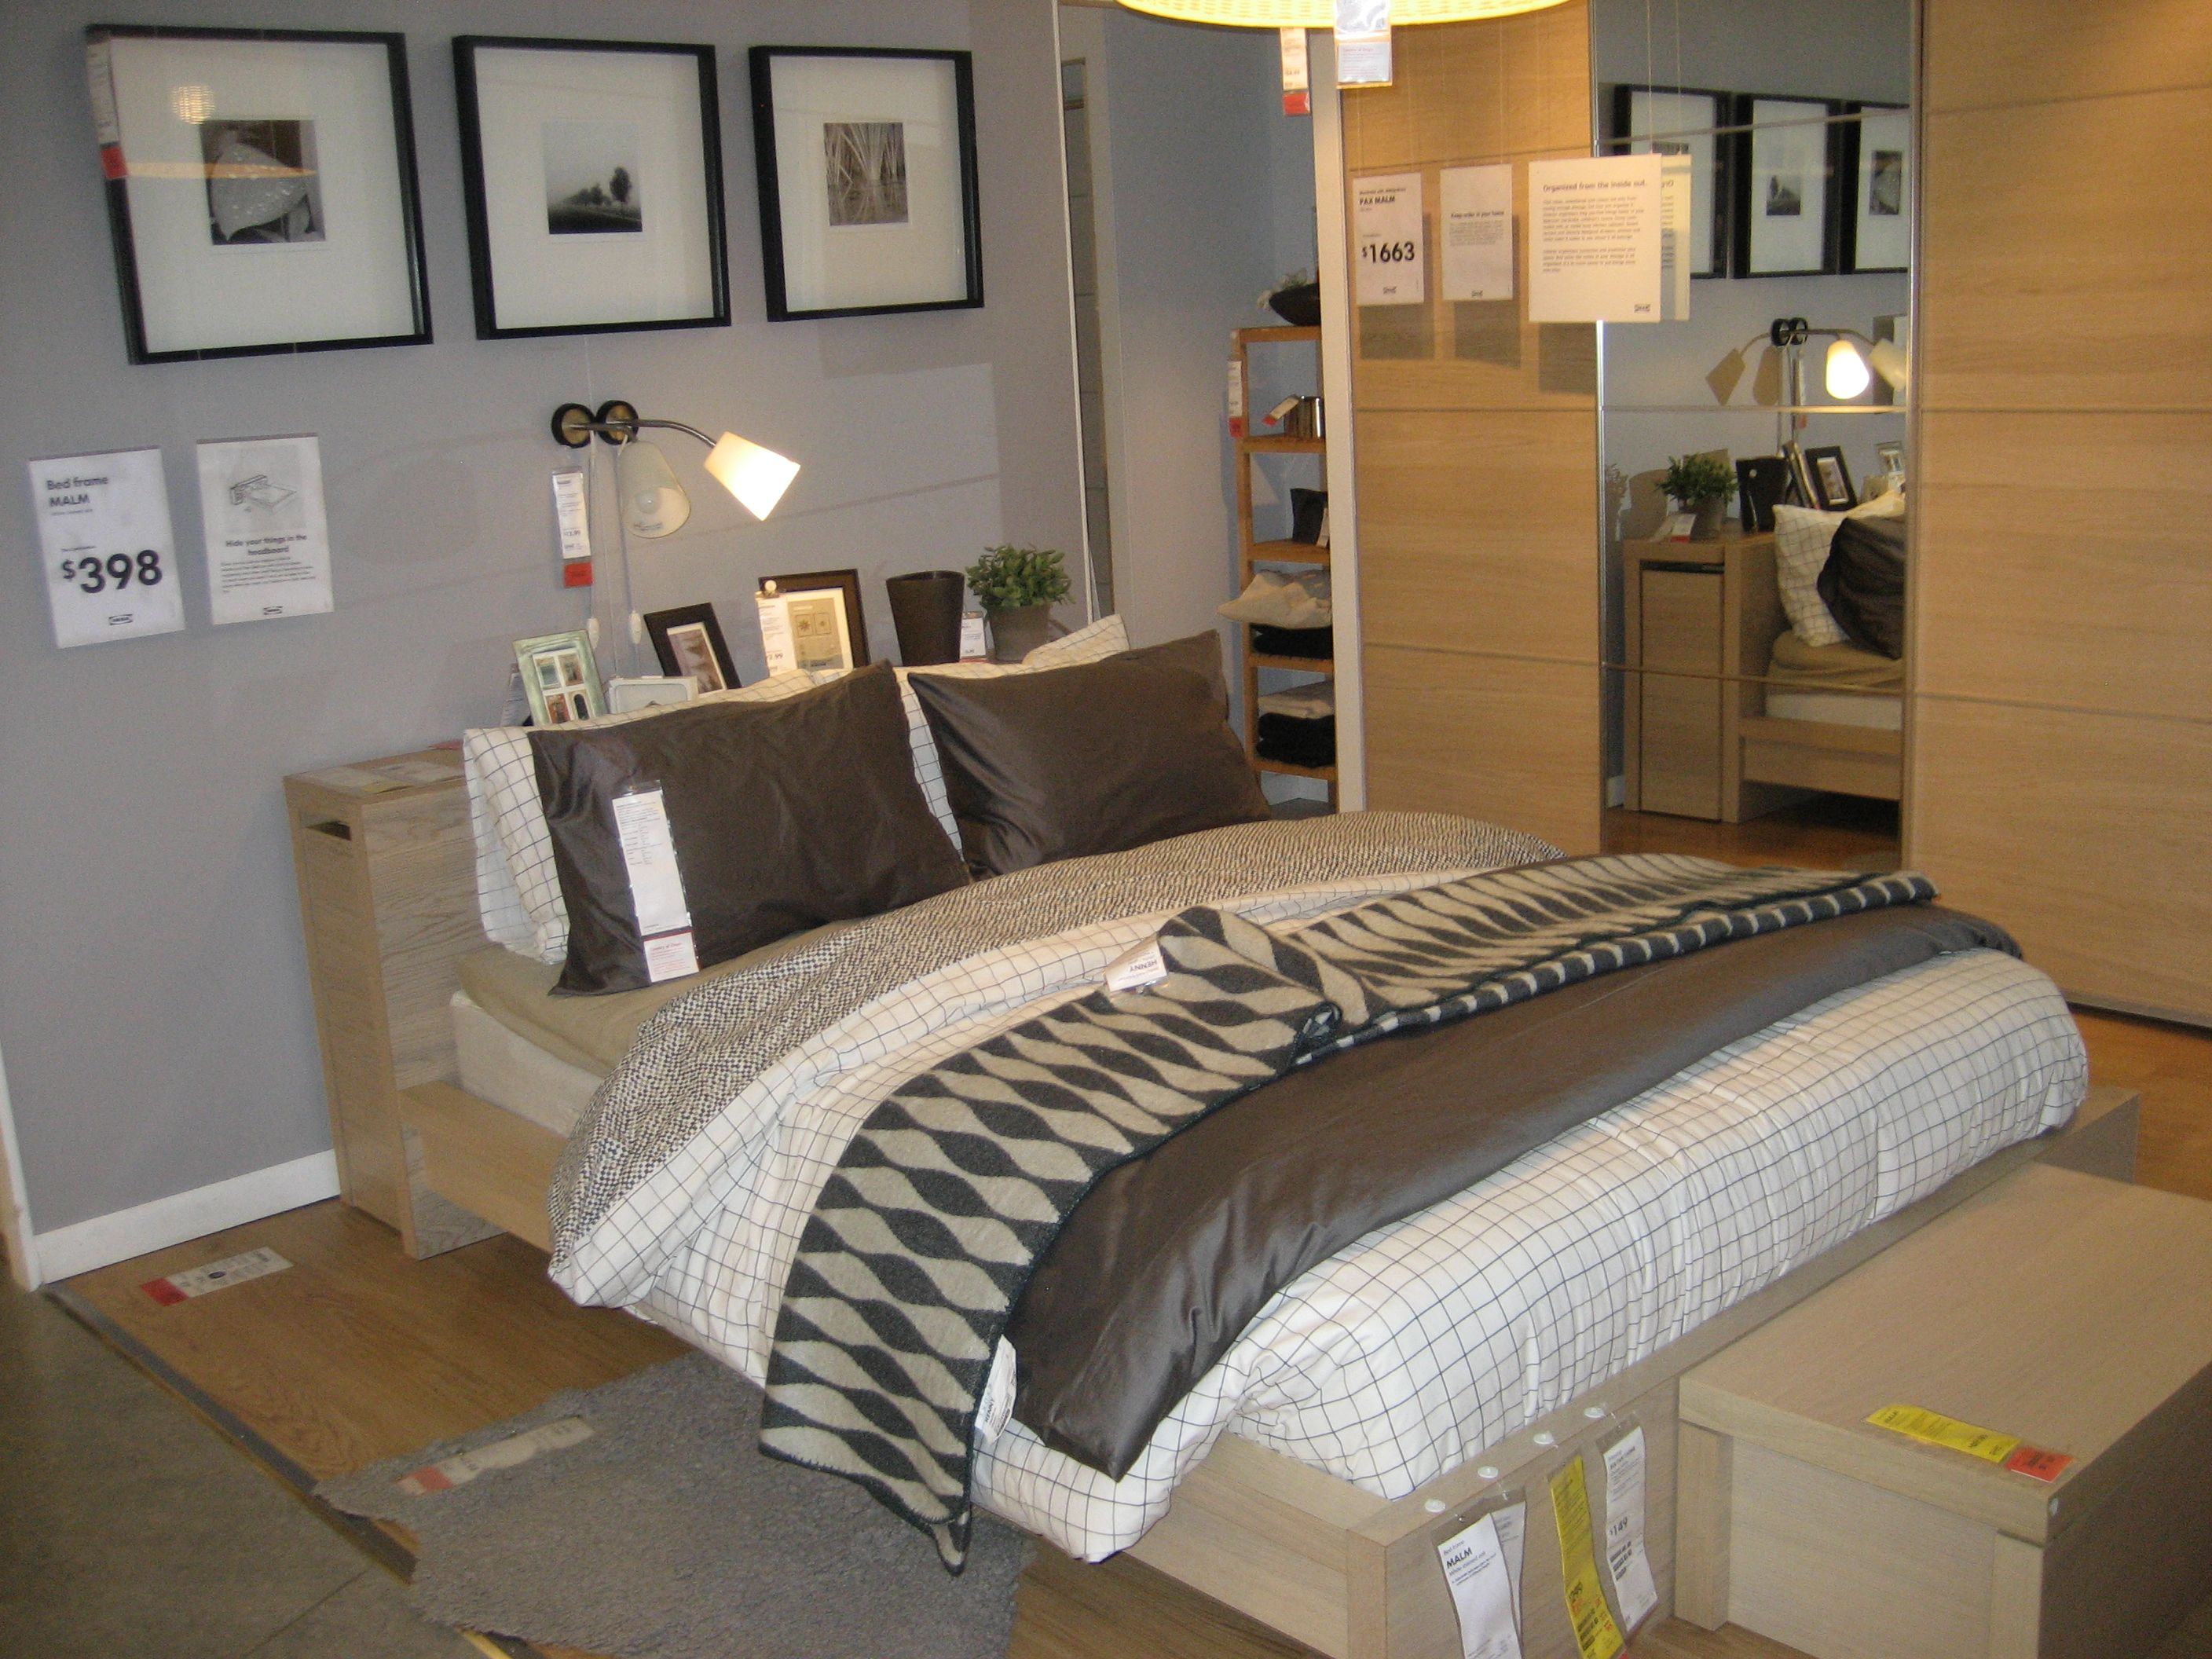 Ikea Bedroom Design Tool Ikea Malm Bedroom Set  Bedroom  Pinterest  Ikea Malm Malm And